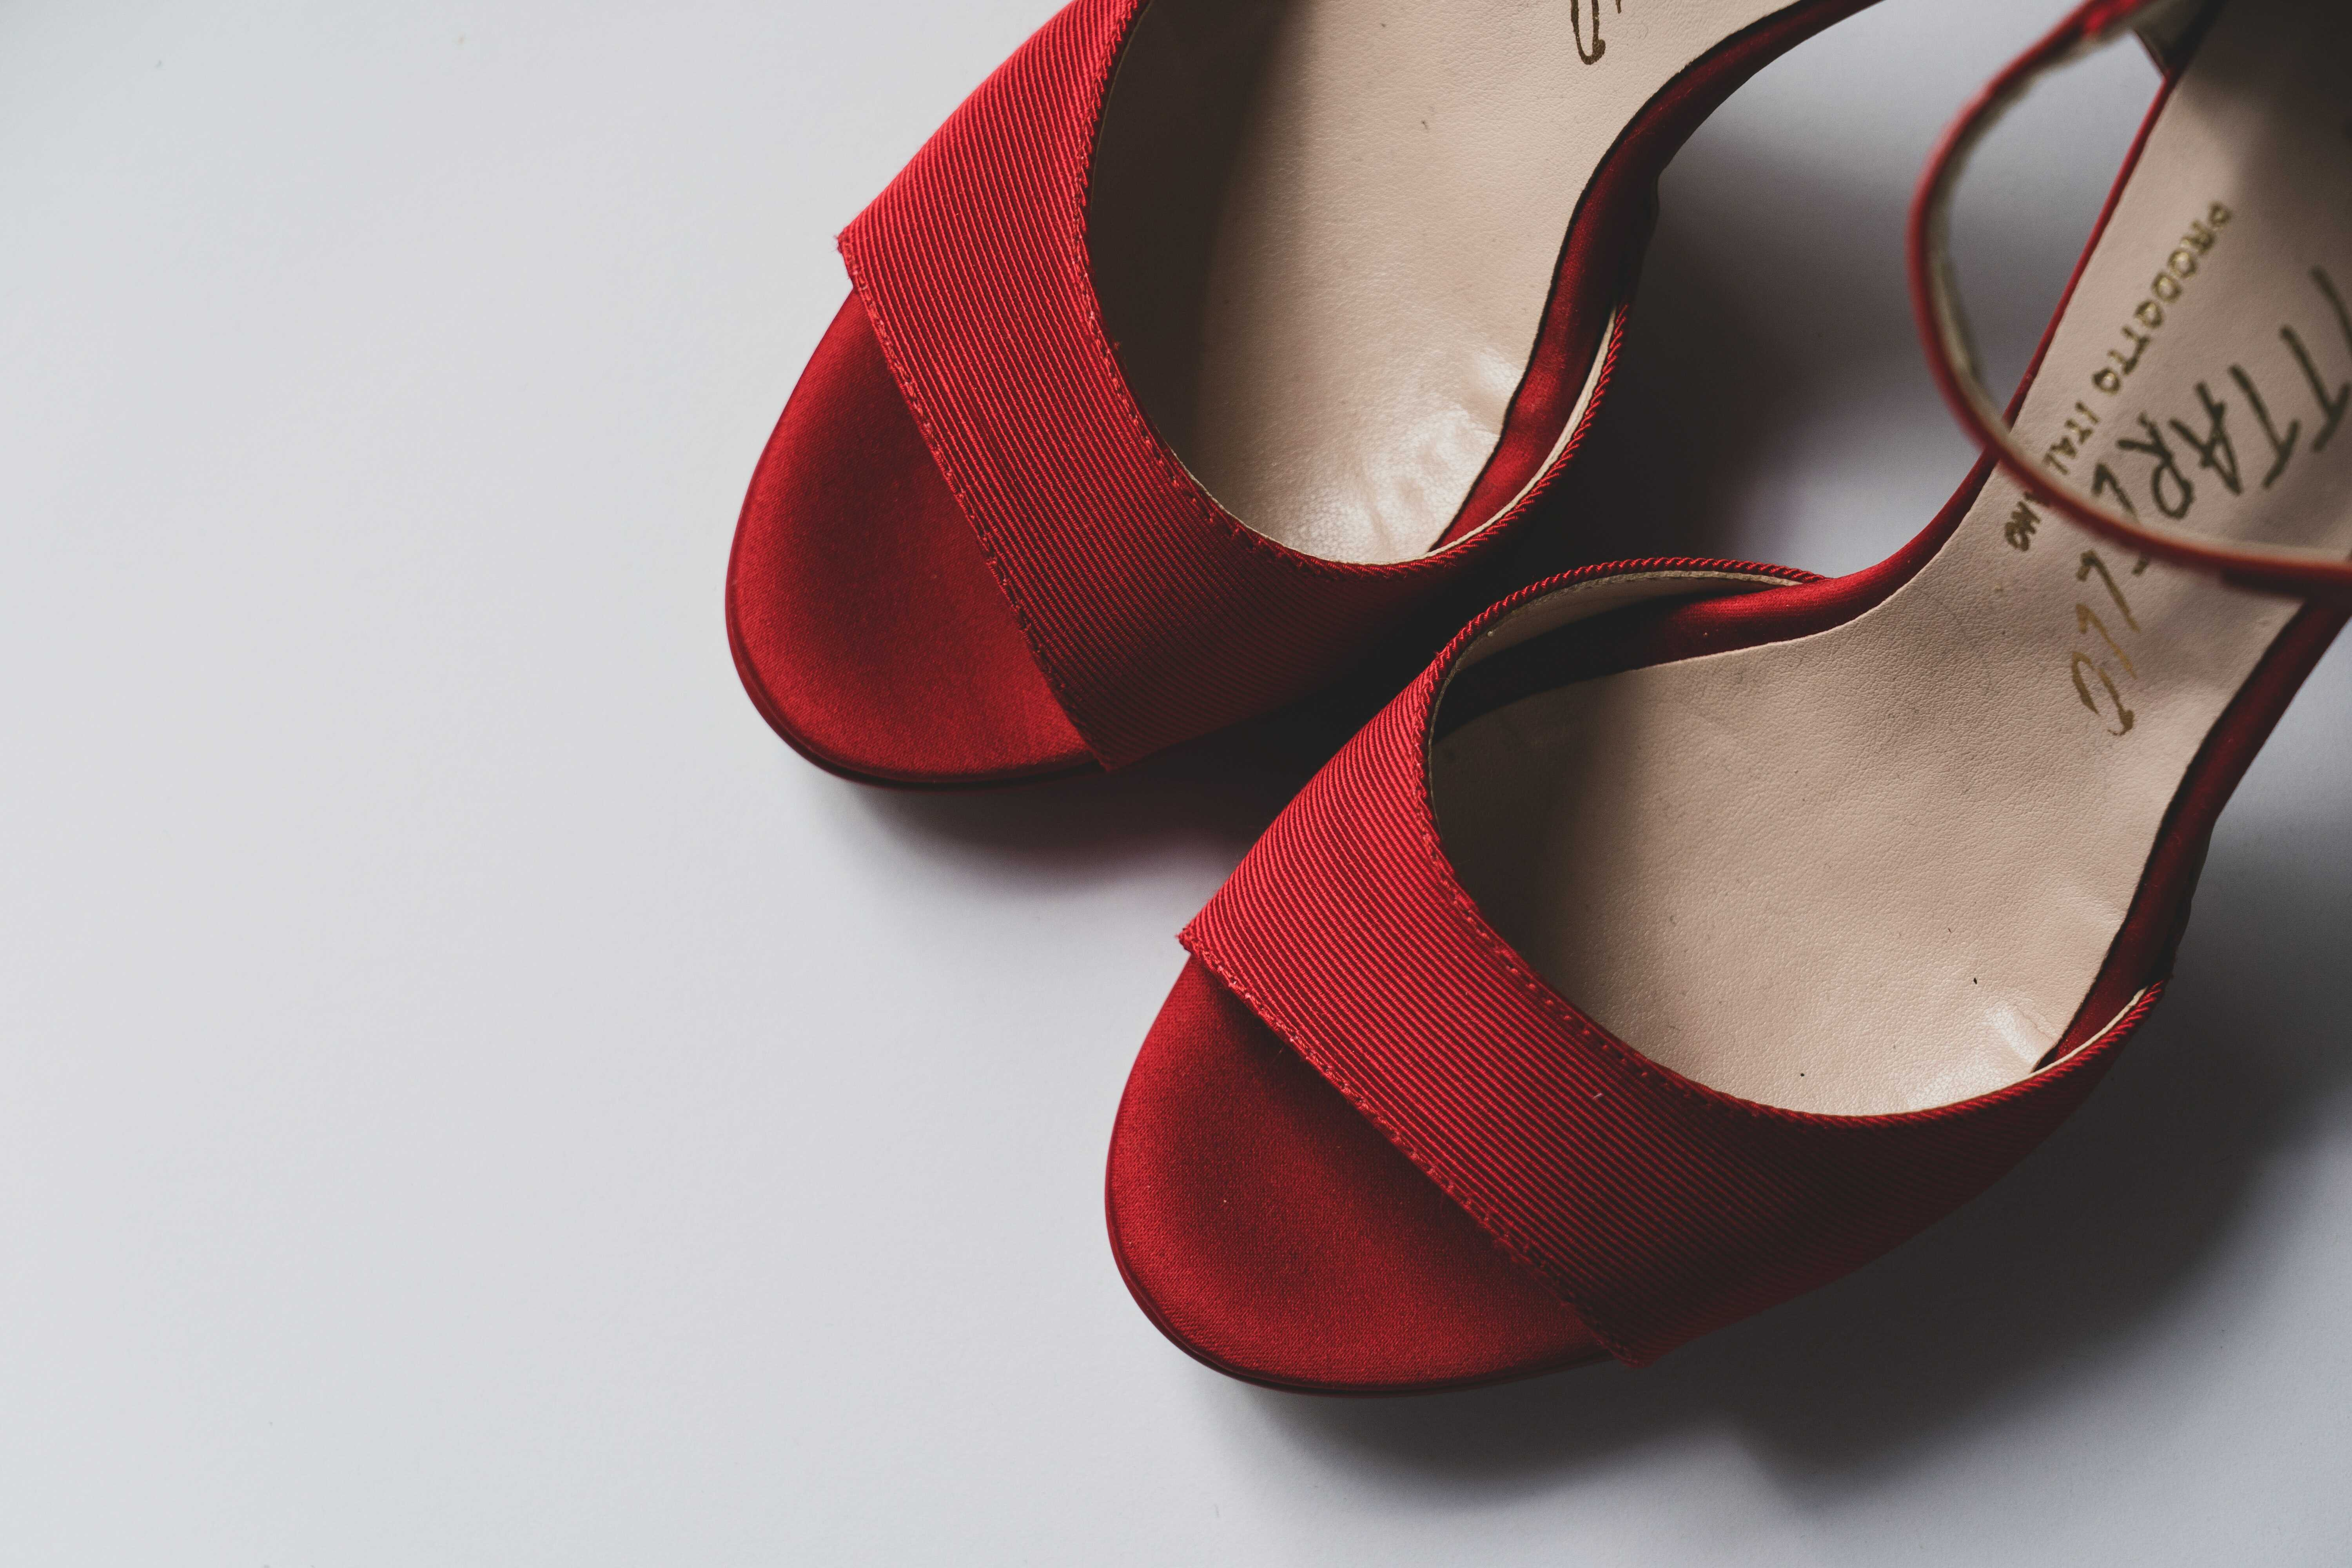 a red open toe sandal